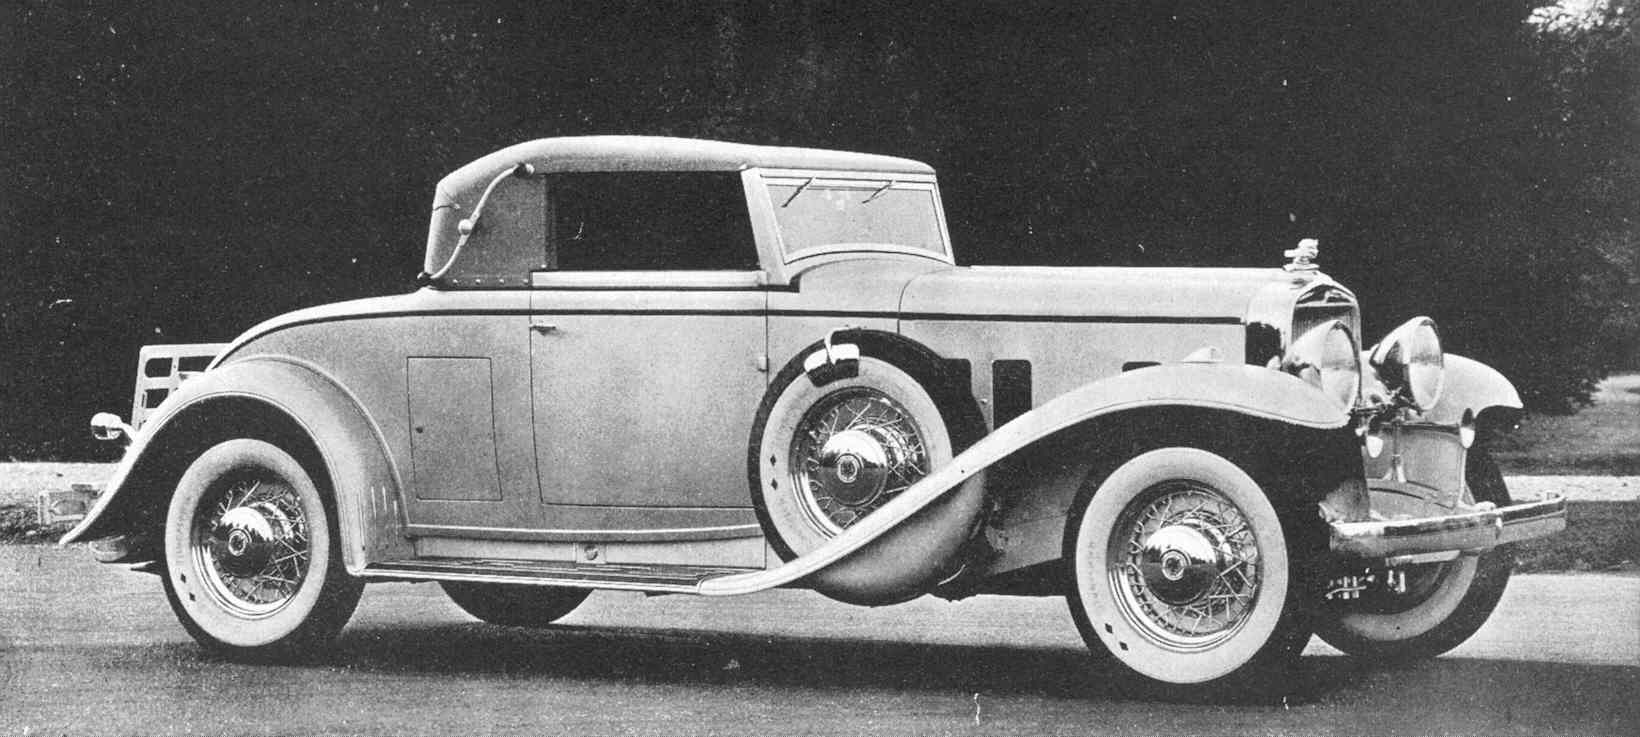 The 1933 DV-32 Cabriolet Coupe was one of the last cars made by ...